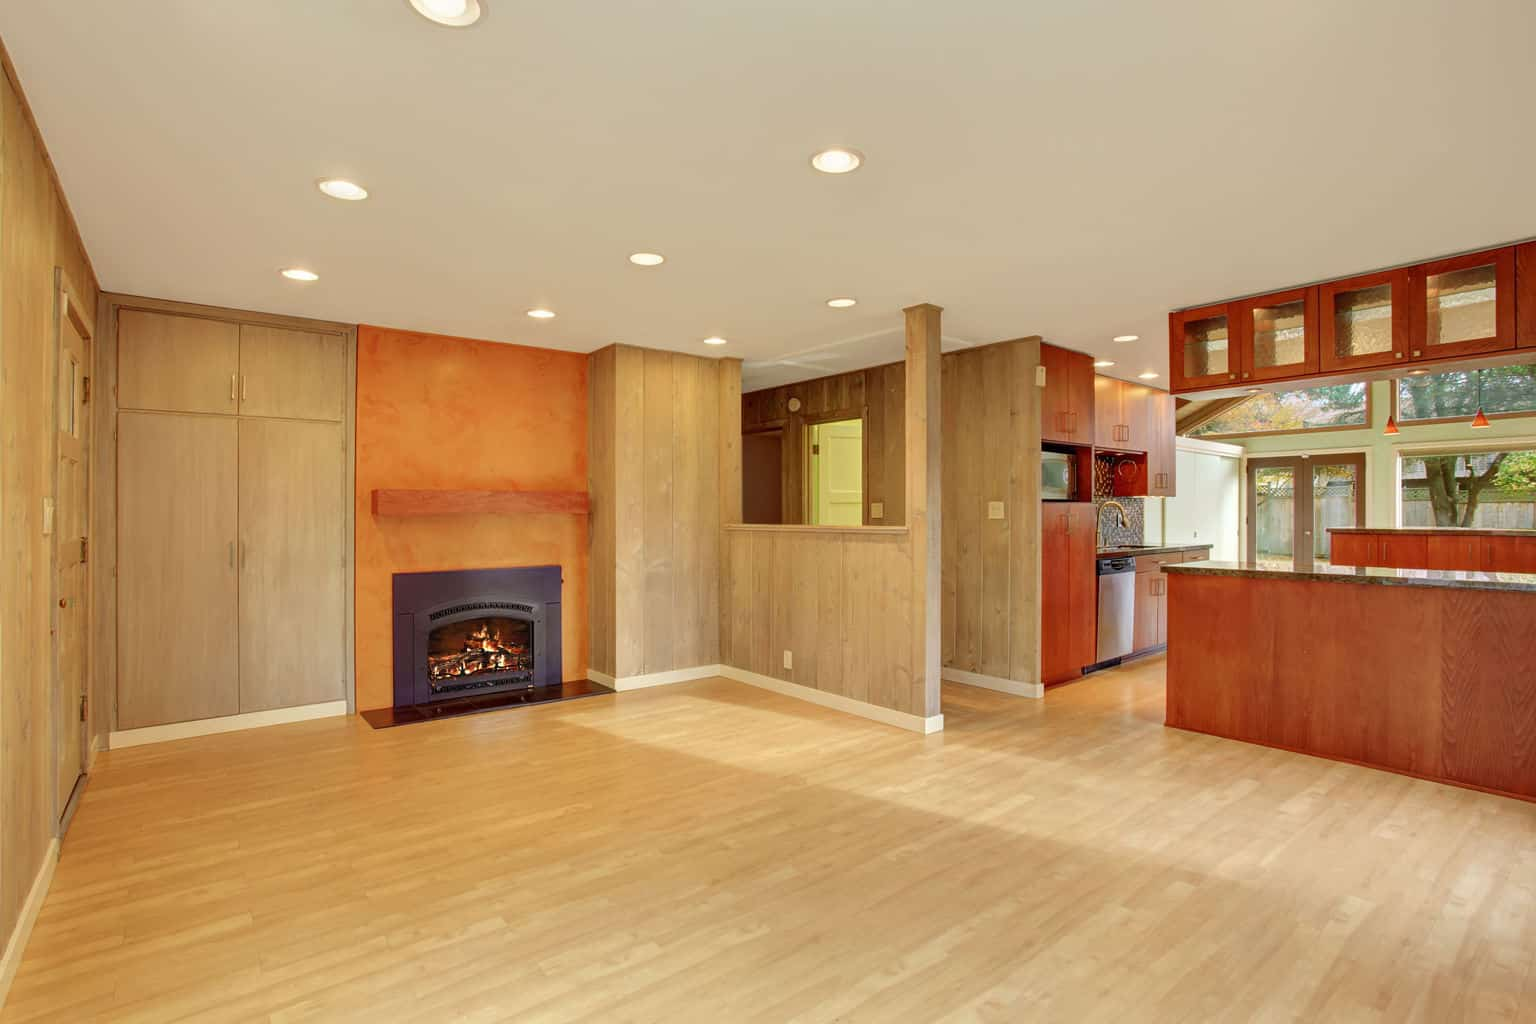 The 5 most common hardwood floor colors the flooring lady for Hardwood floor colors